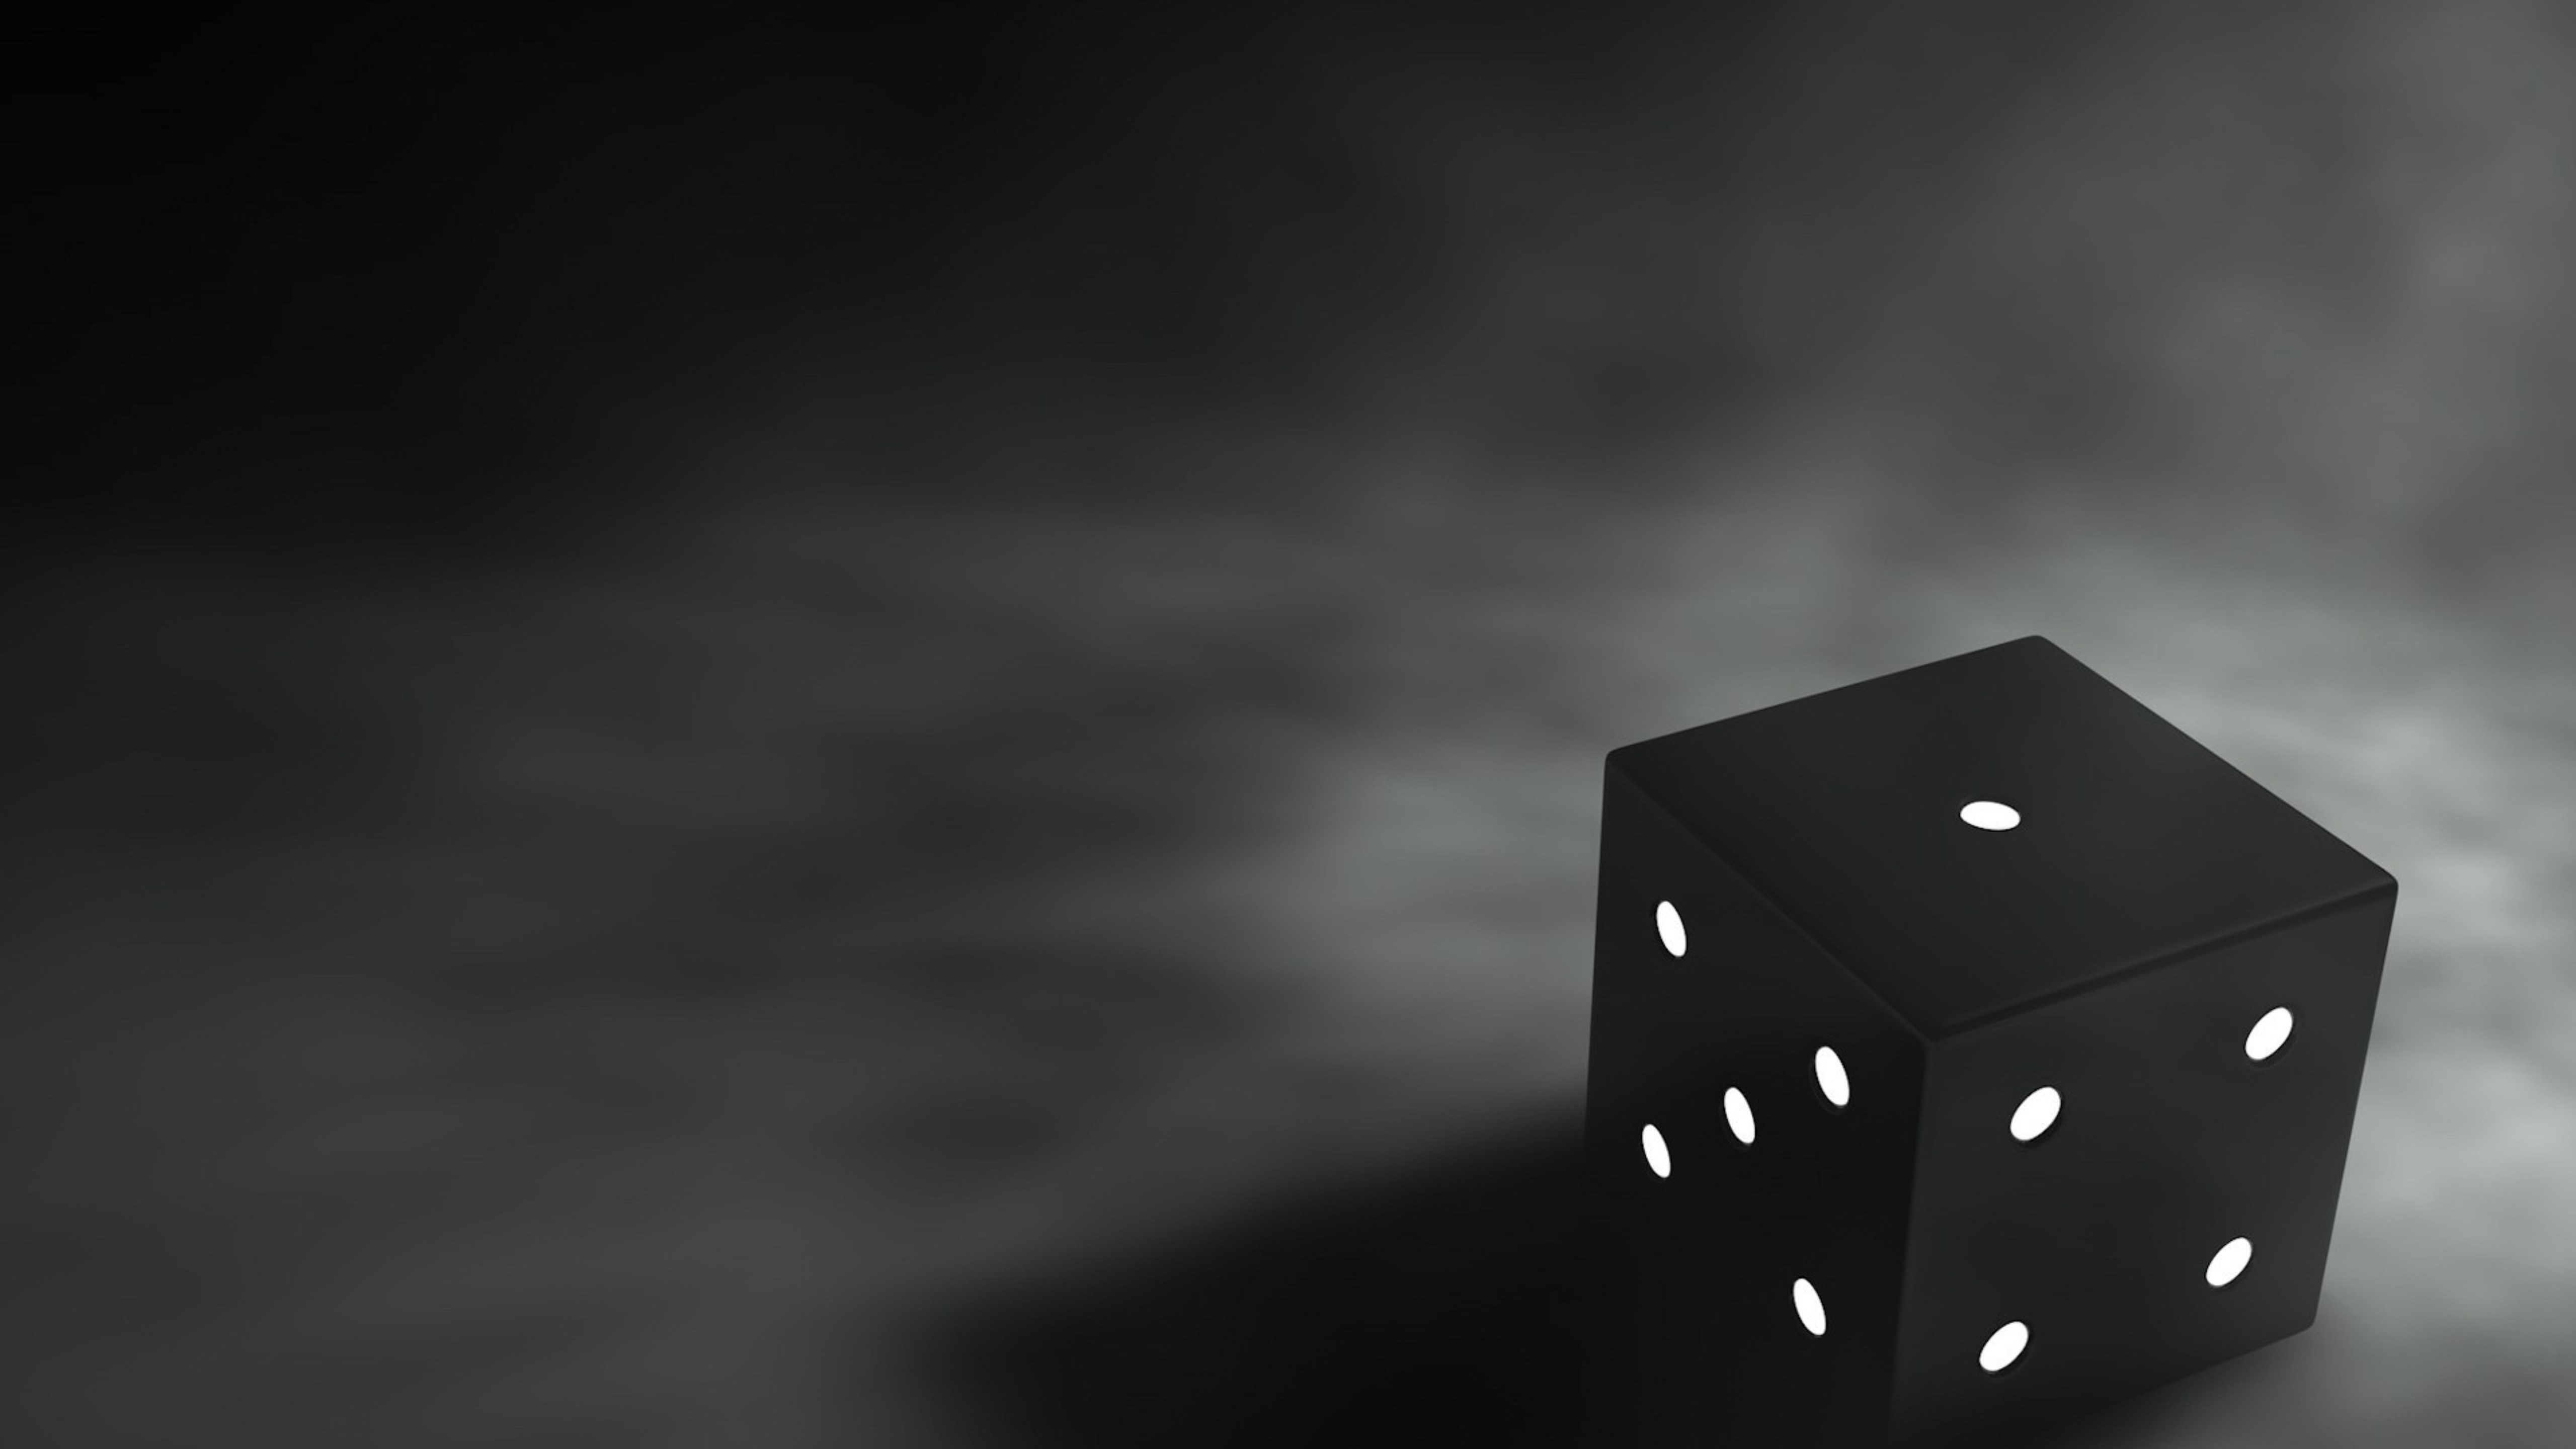 black dice on a dark backgound hd wallpaper